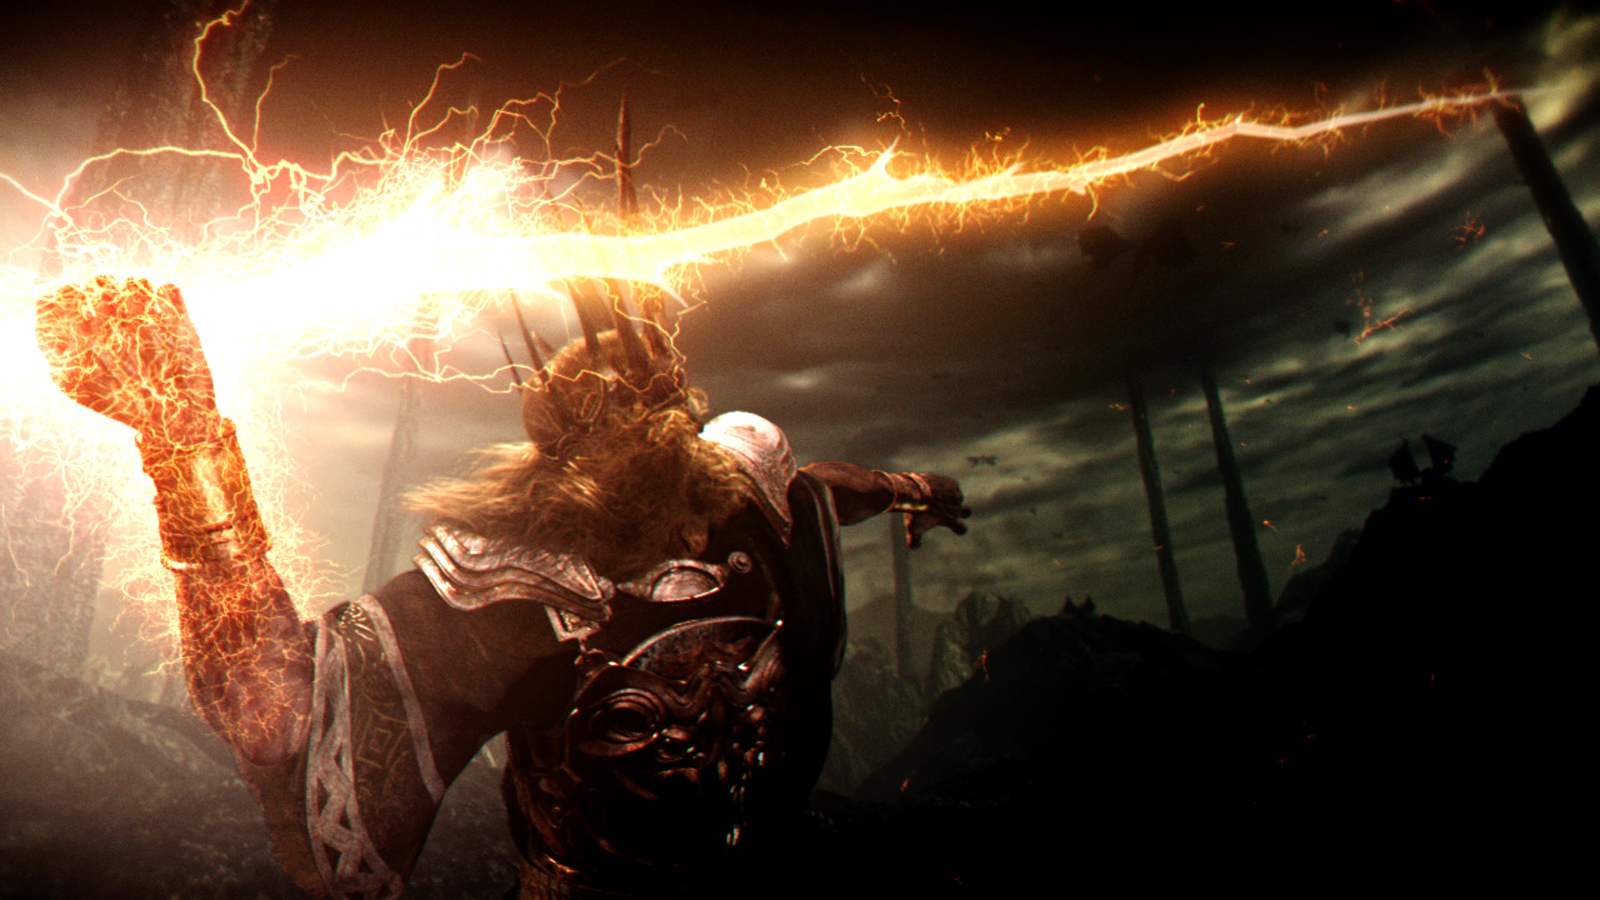 Dark Souls HD Wallpapers and DVD Cover| HD Wallpapers ,Backgrounds ,Photos ,Pictures, Image ,PC